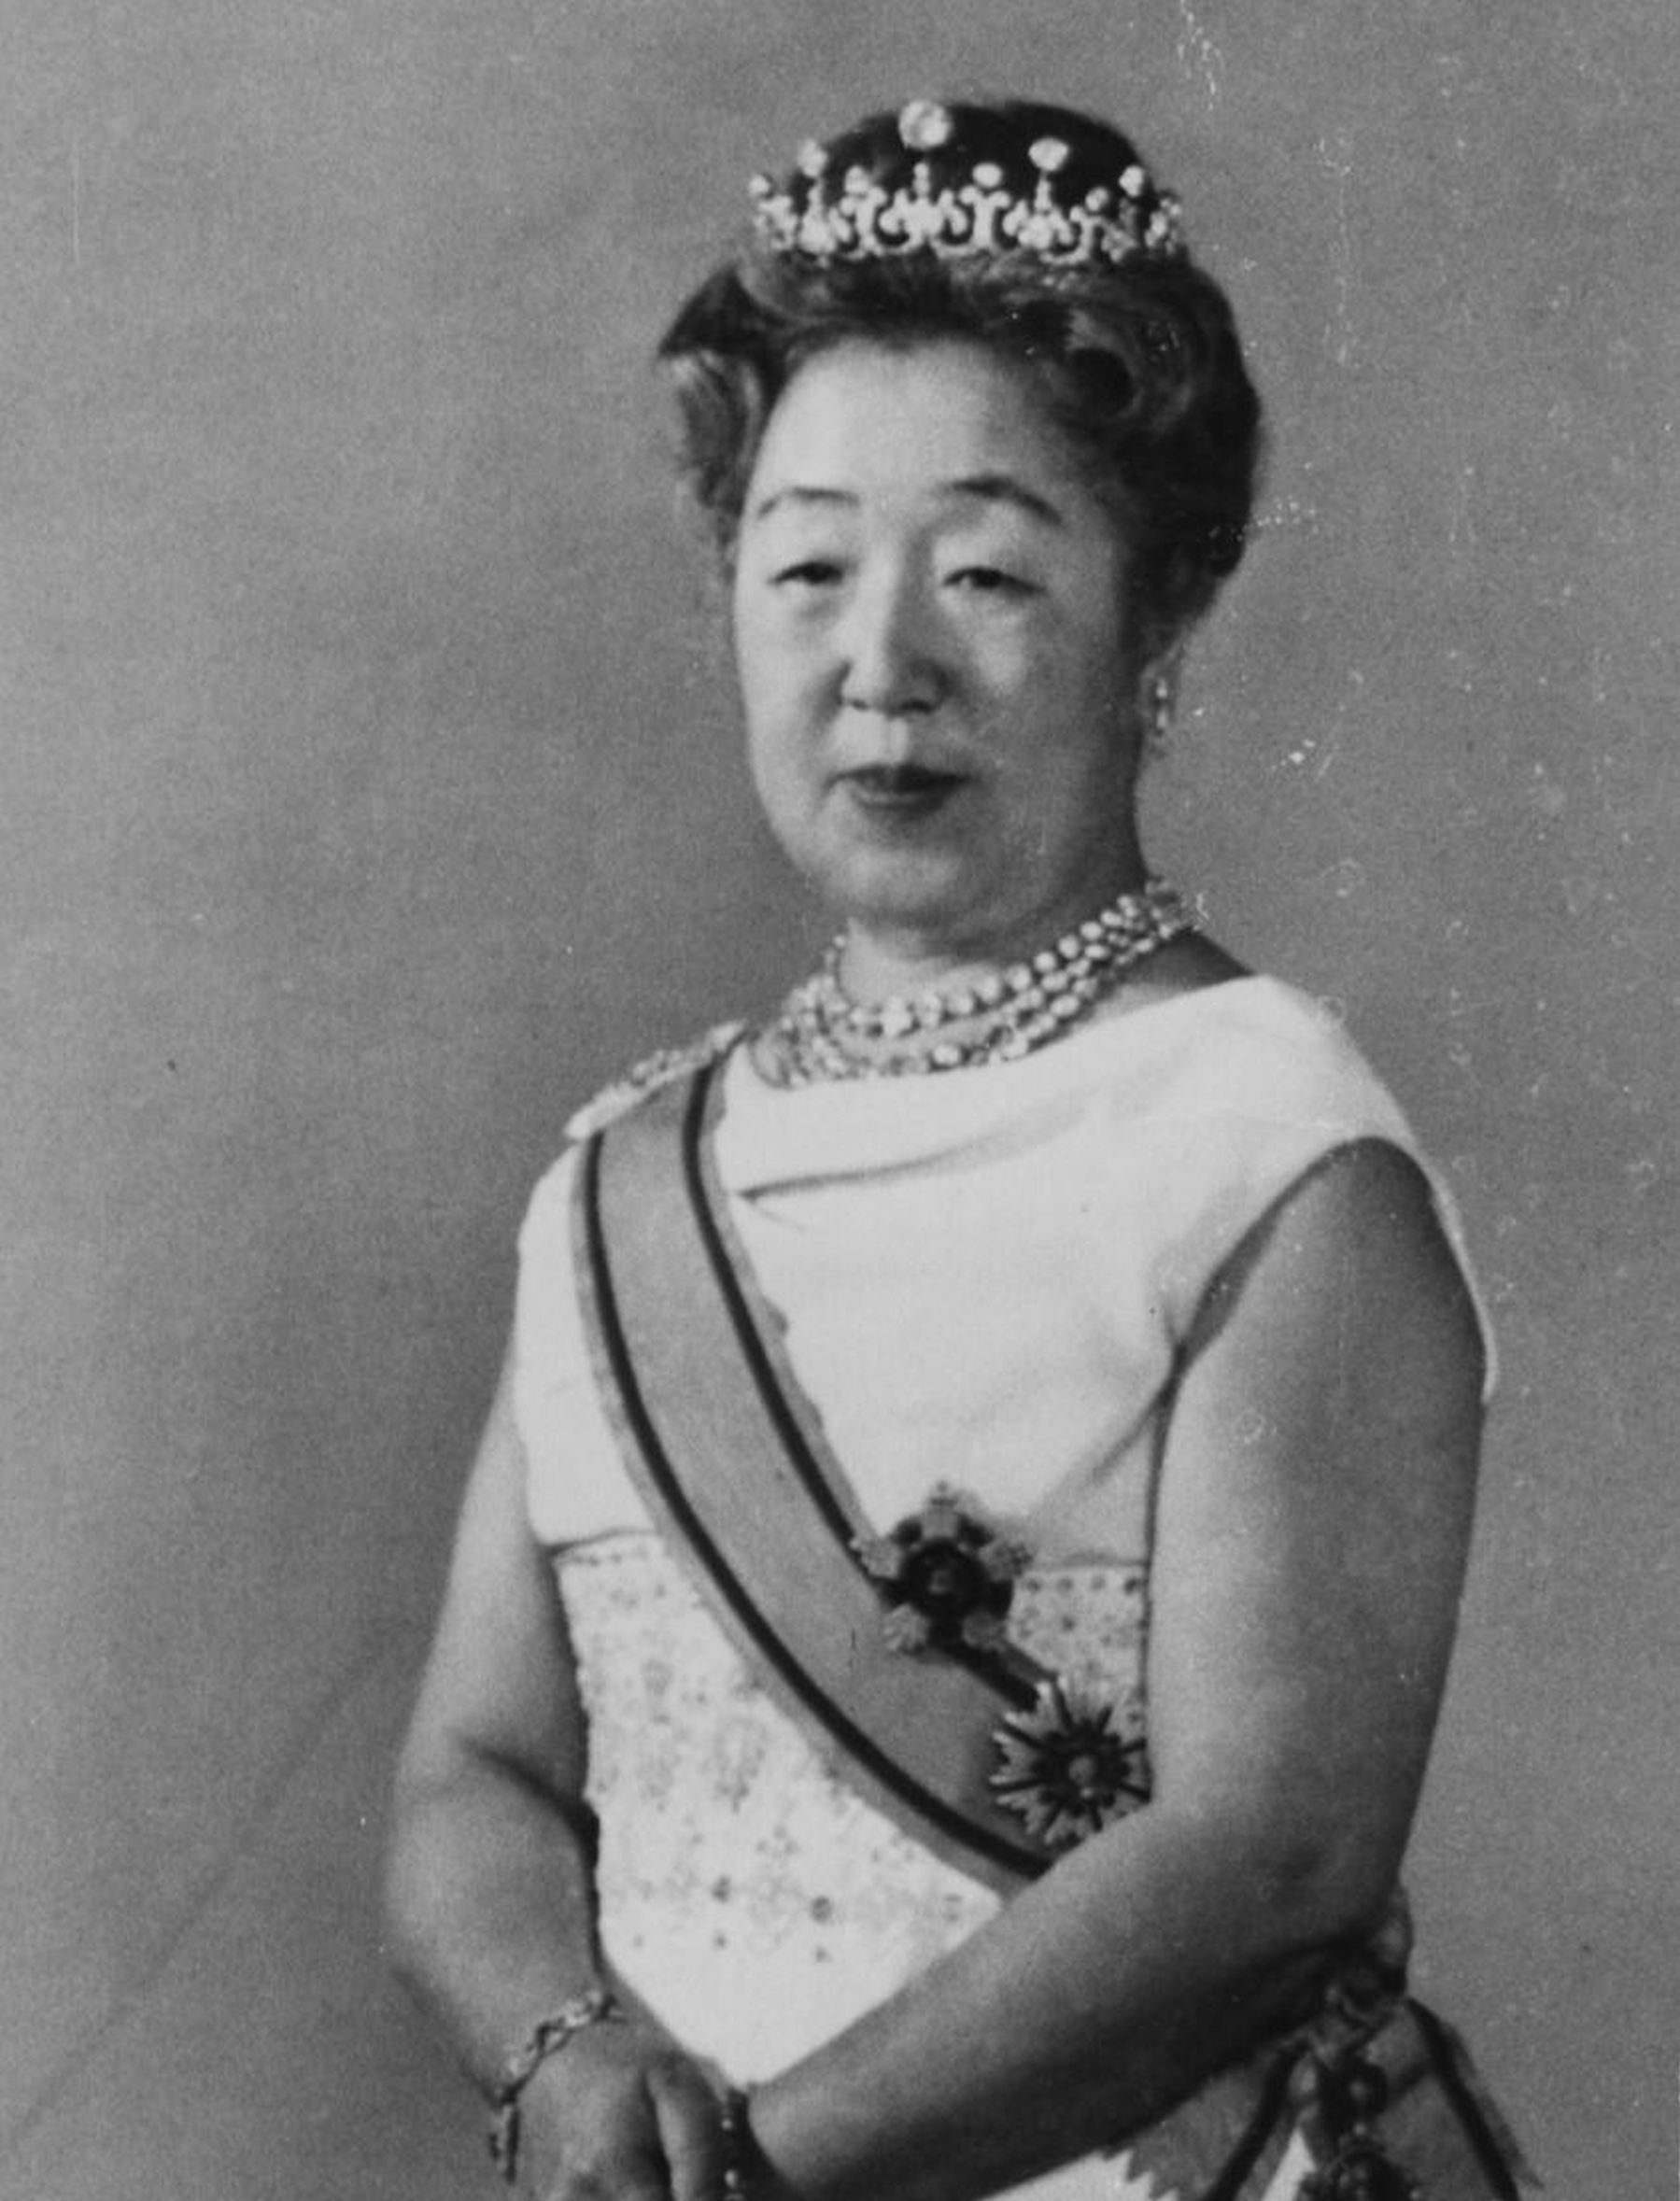 Japan Imperial Trivia Empress Tiara and Dresses 006